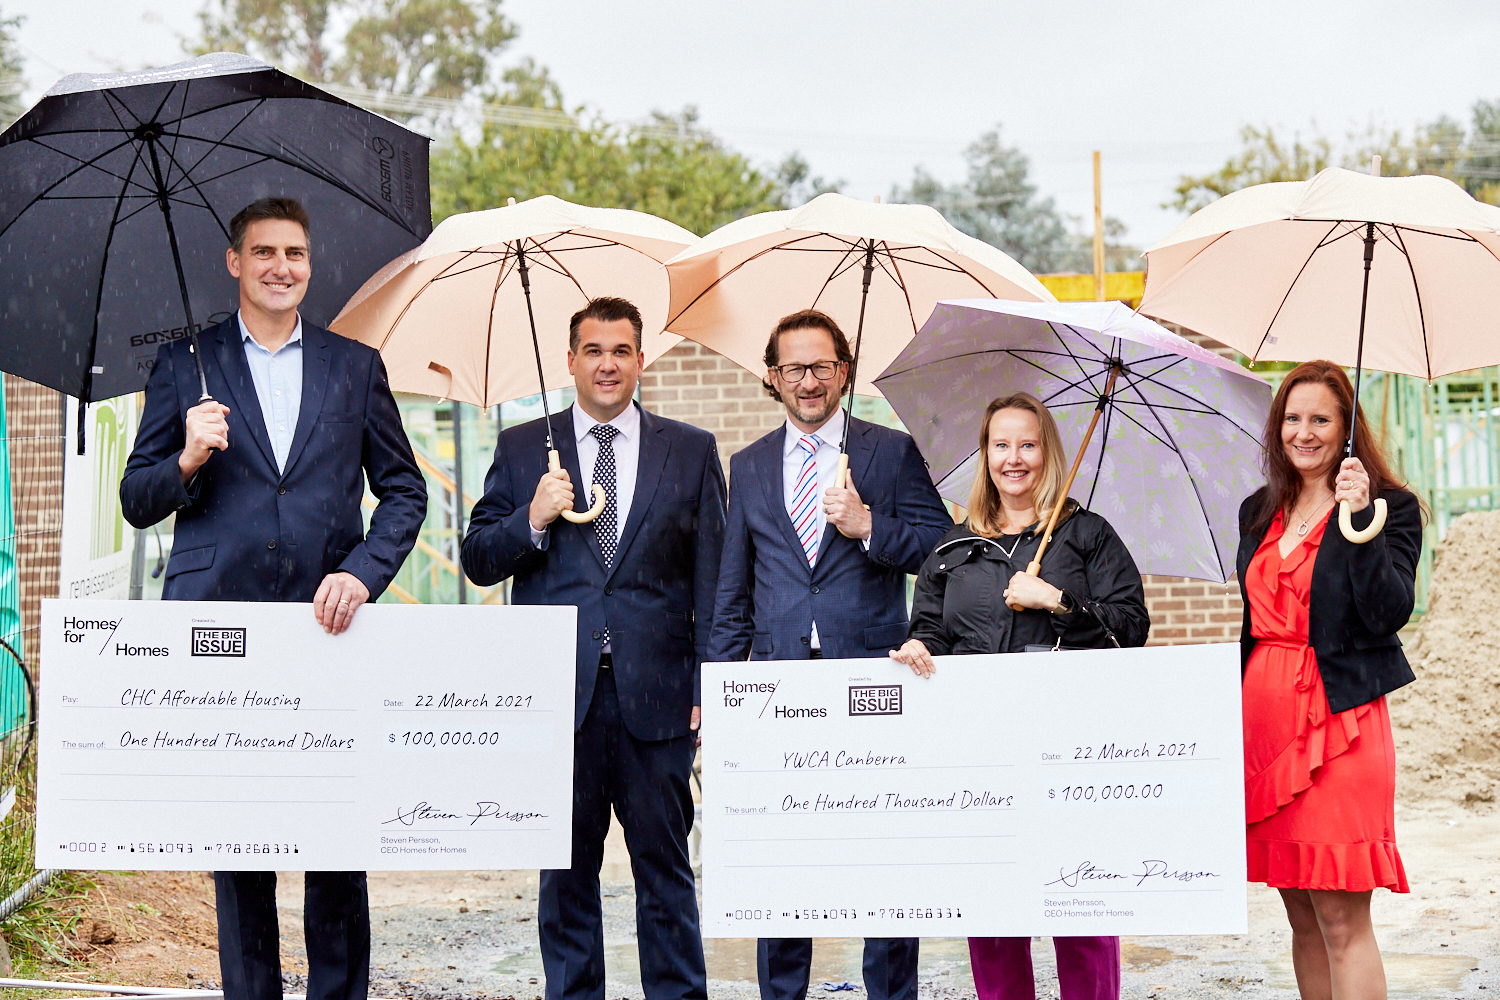 Homes for Homes gives $200,000 boost to social housing projects